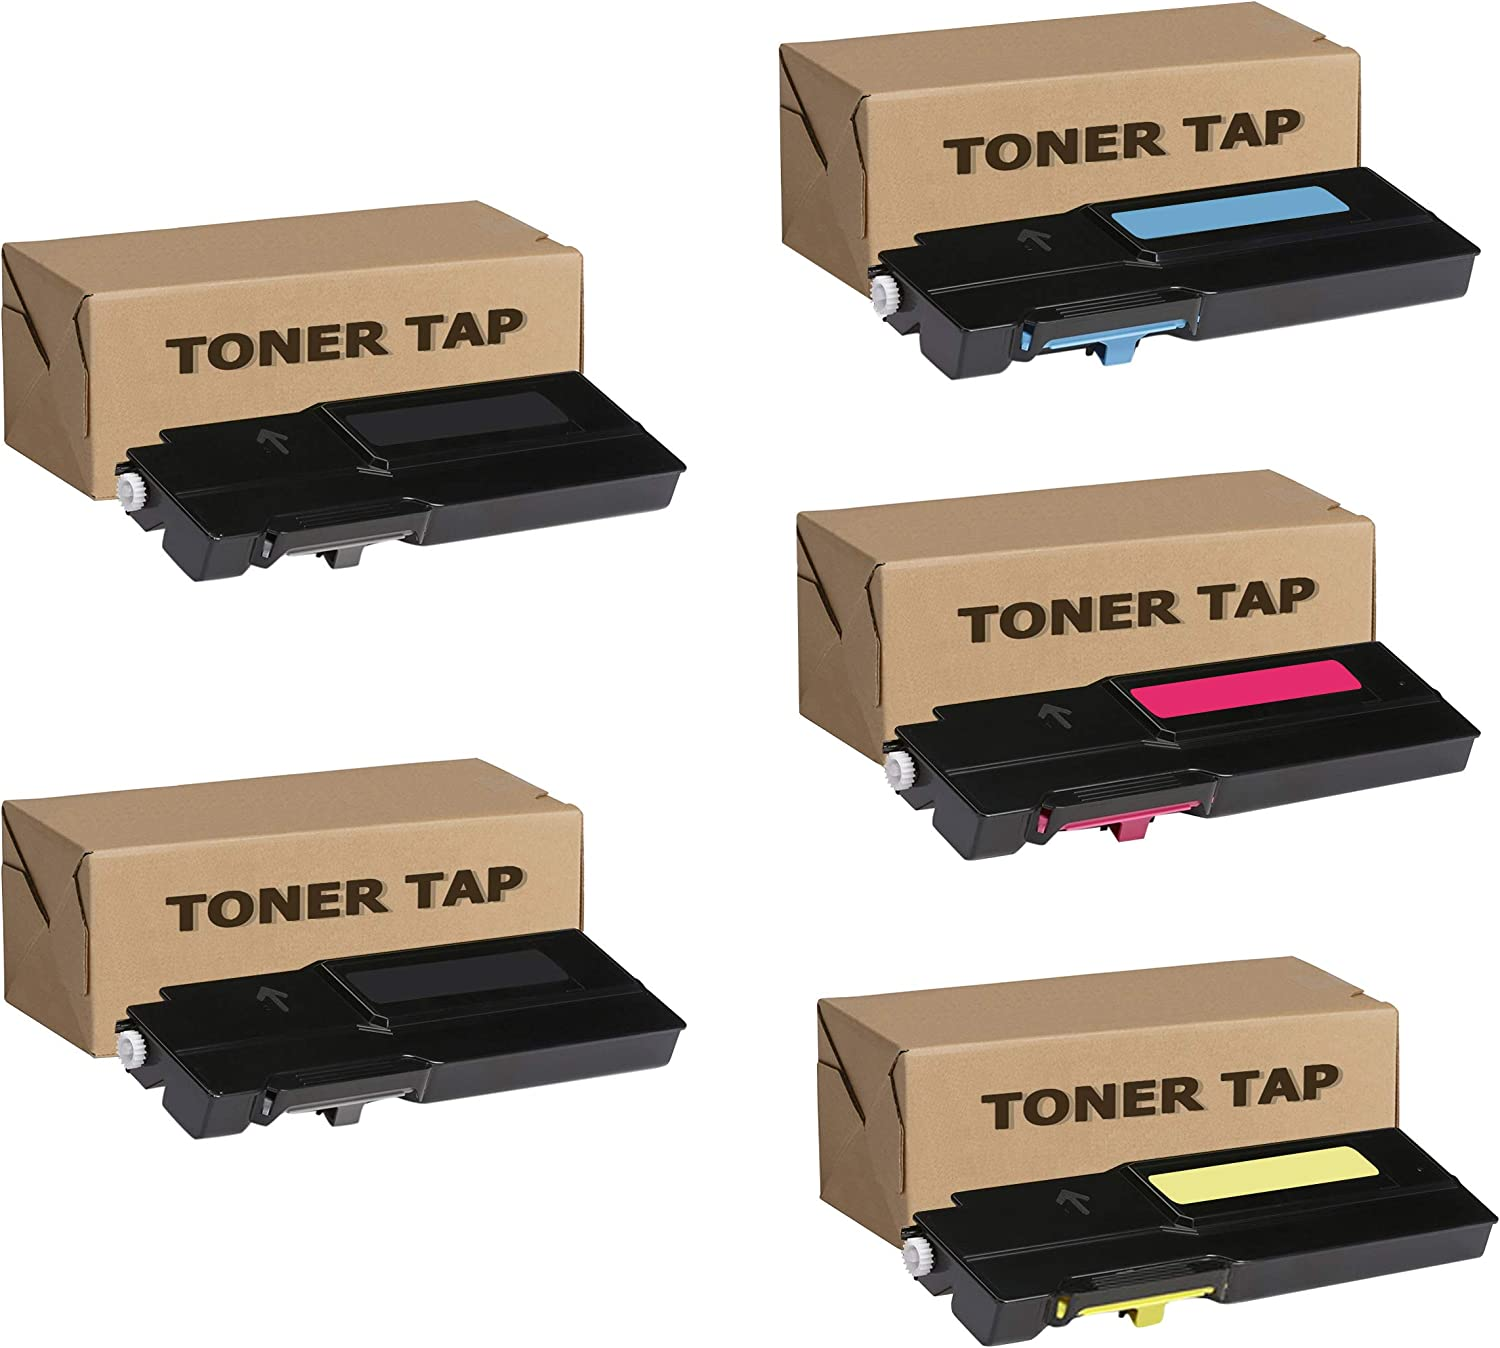 Extra High Yield Toner Tap Compatible for Xerox VersaLink C400 C405 C400D C400DN C405DN C405N MFP (106R03524 106R03526 106R03527 106R03525, 5-Pack)